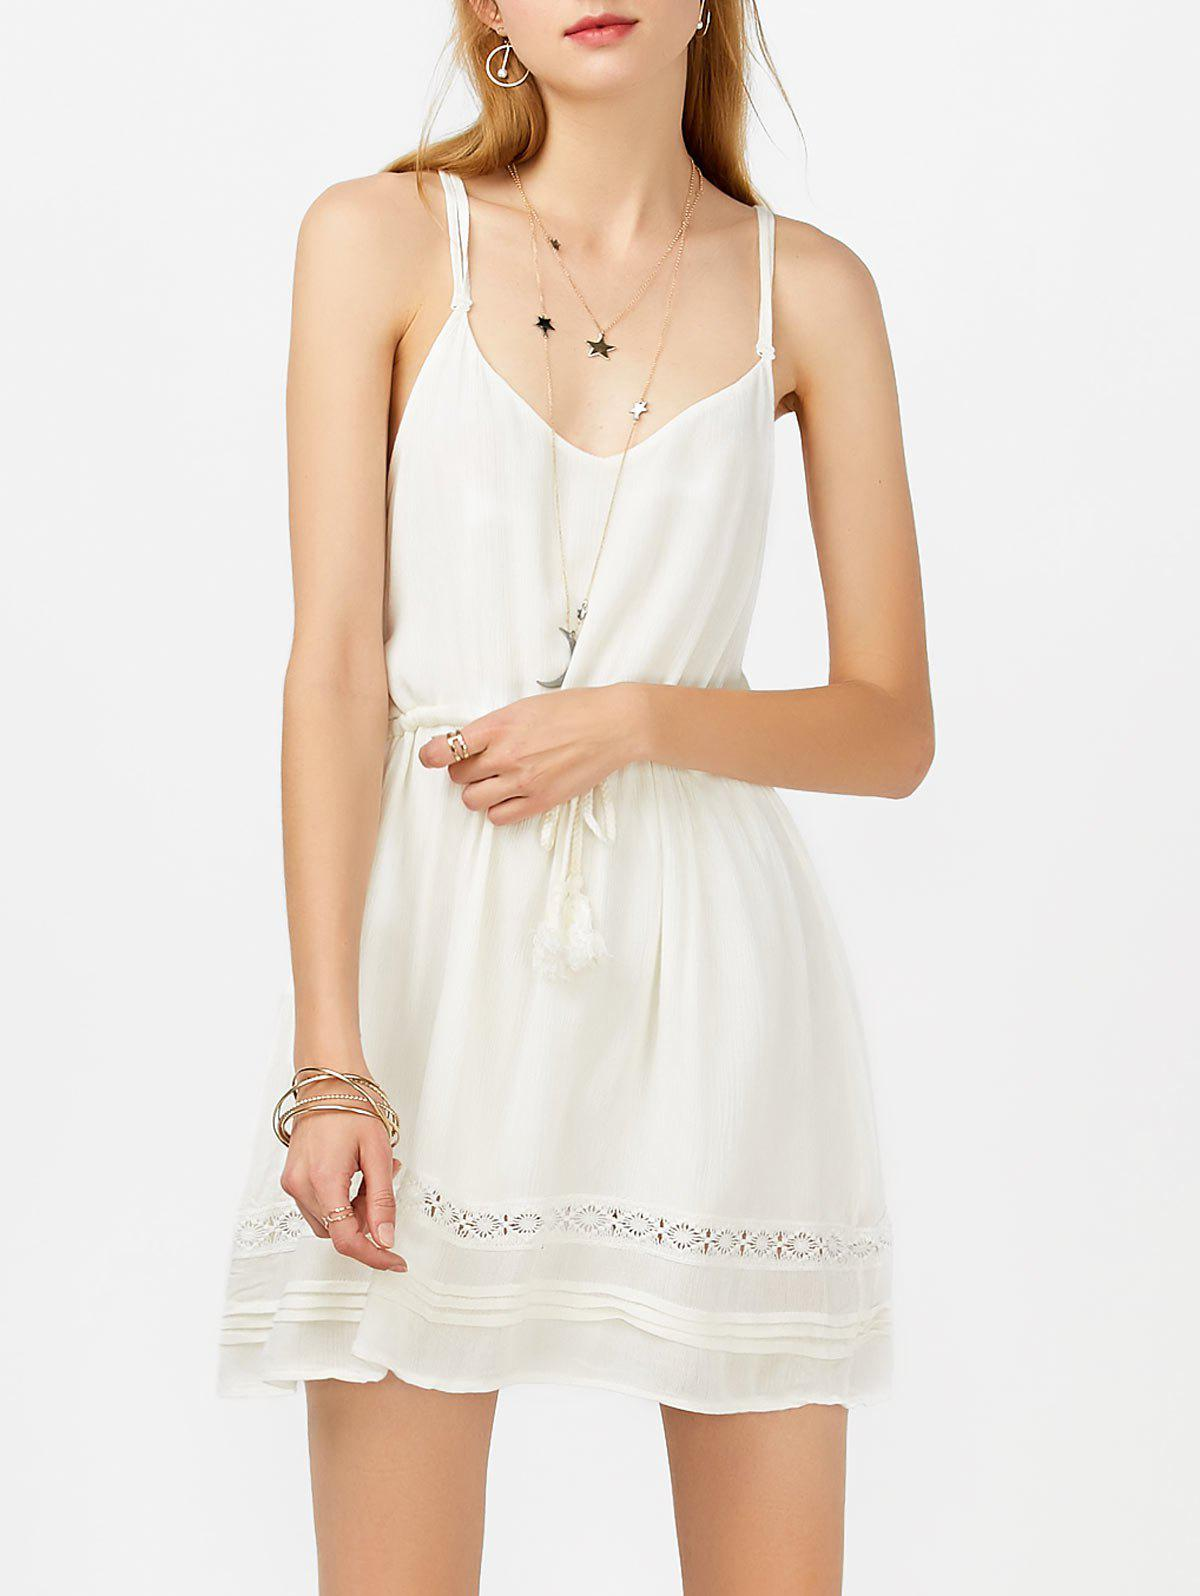 Tasseled Drawstring Mini Slip Sundress - Blanc XL